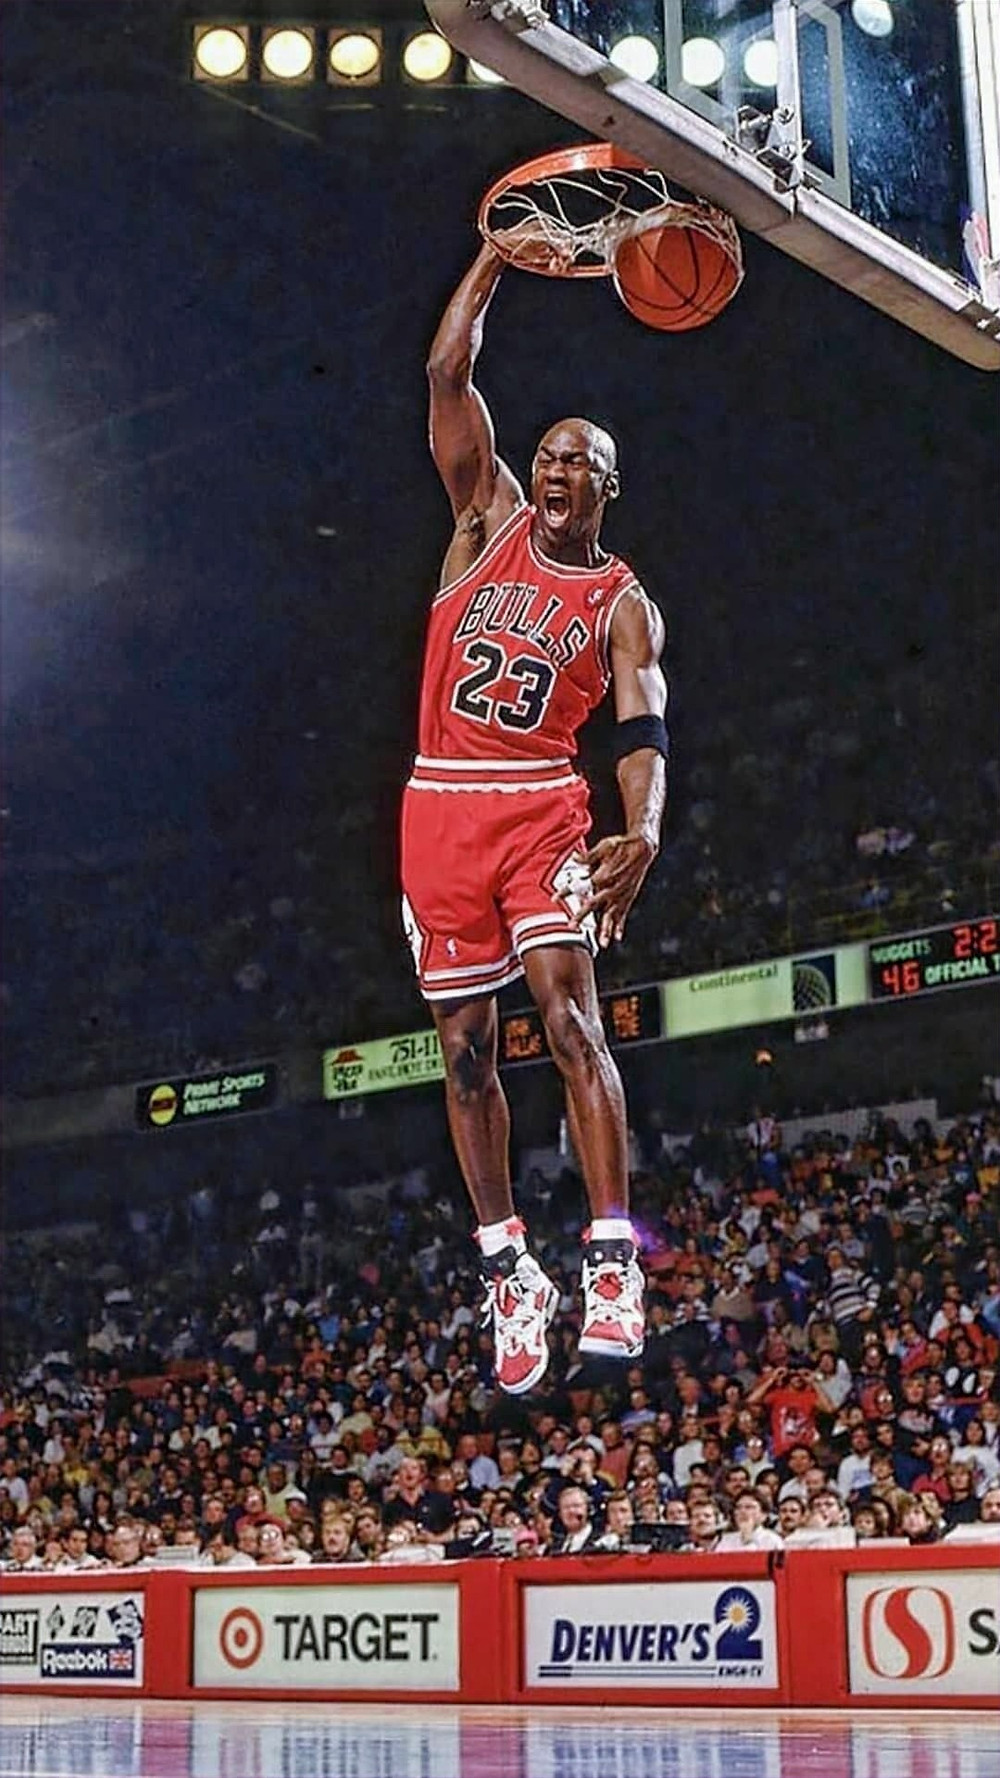 Micheal Jordan success story and how he overcame failure and became the greatest in basketball